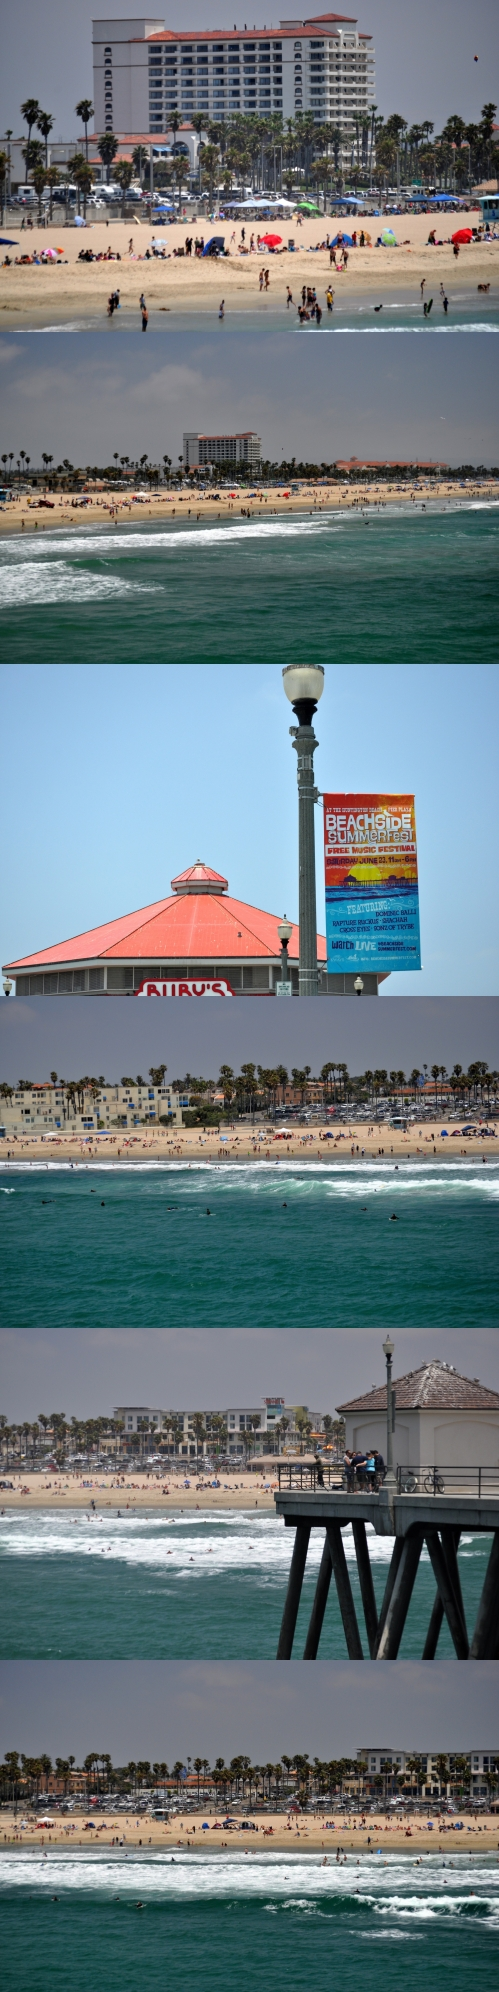 Father's Day: Huntington Beach - waterfront - pier - landcape -  June 17, 2012